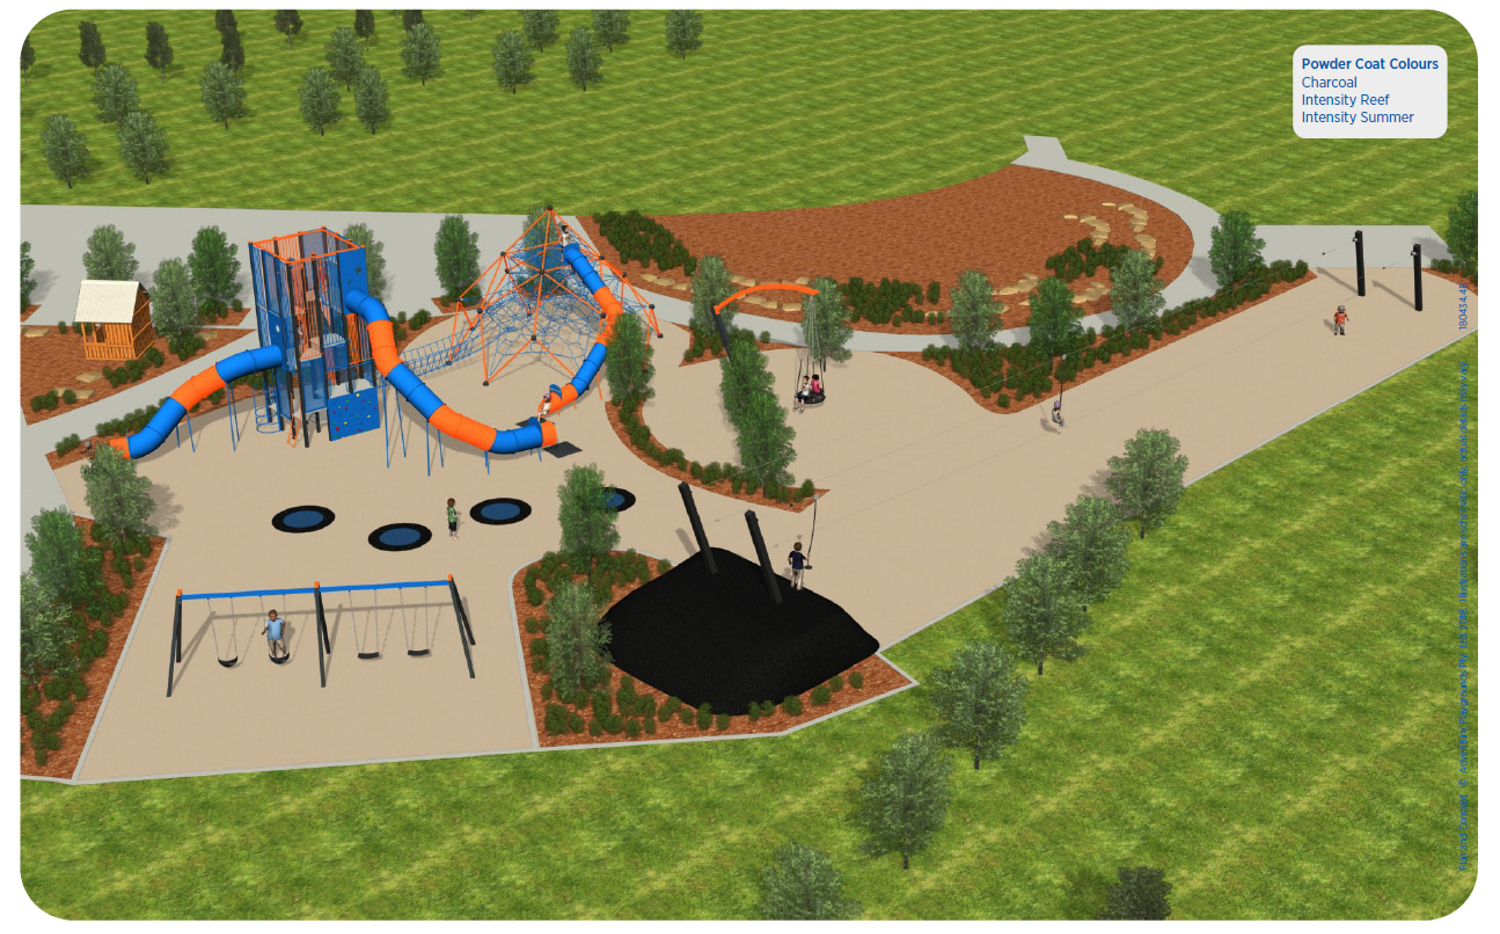 Barooga Adventure Park Concept Plan (Stage 1 & Stage 2)